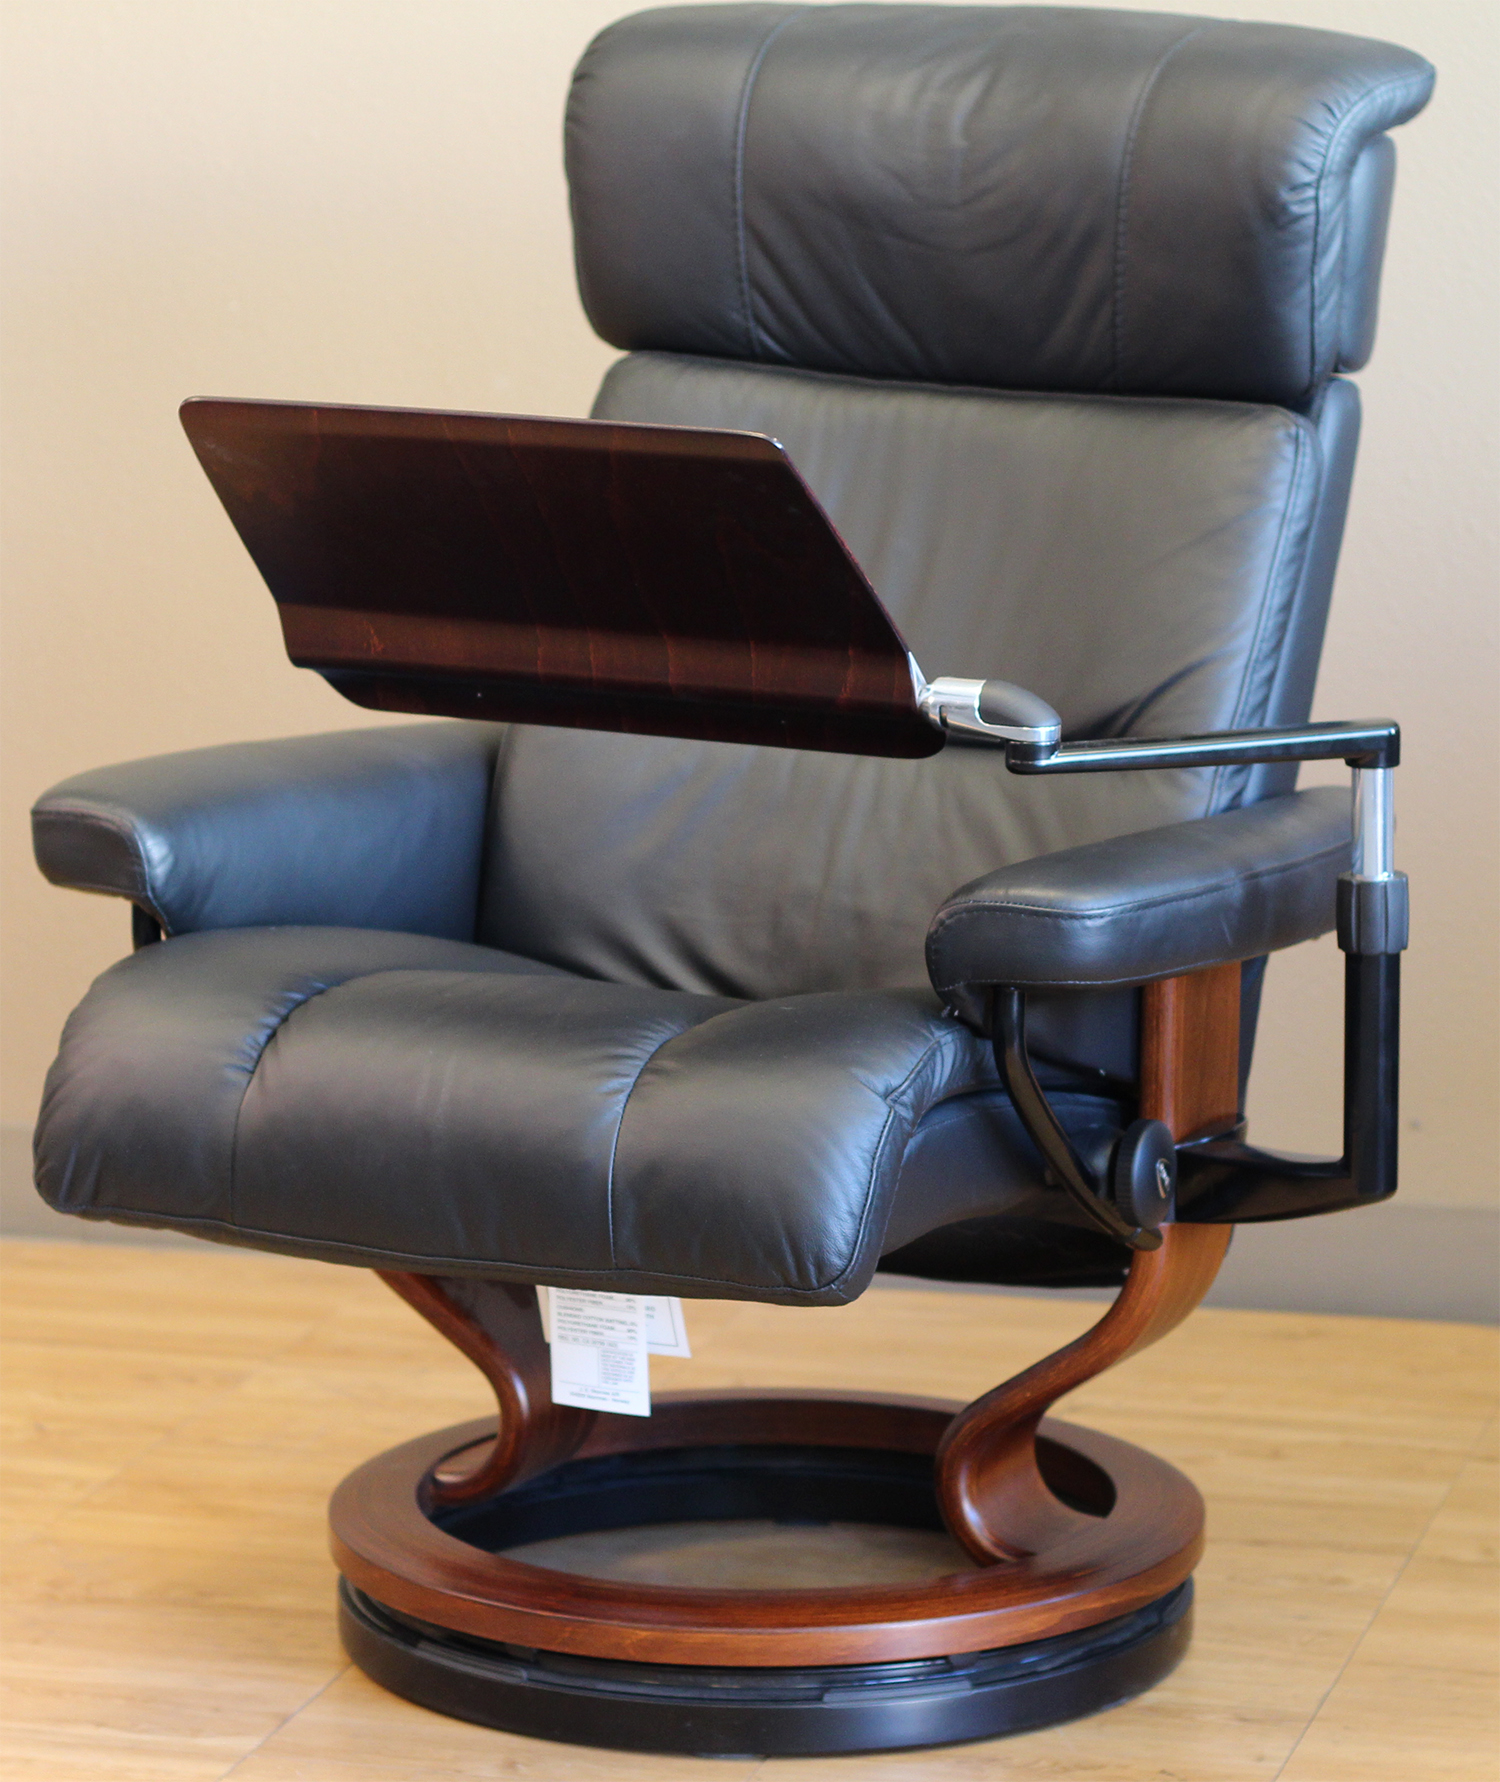 Stressless Sessel Stressless Personal Computer Table From Ekornes